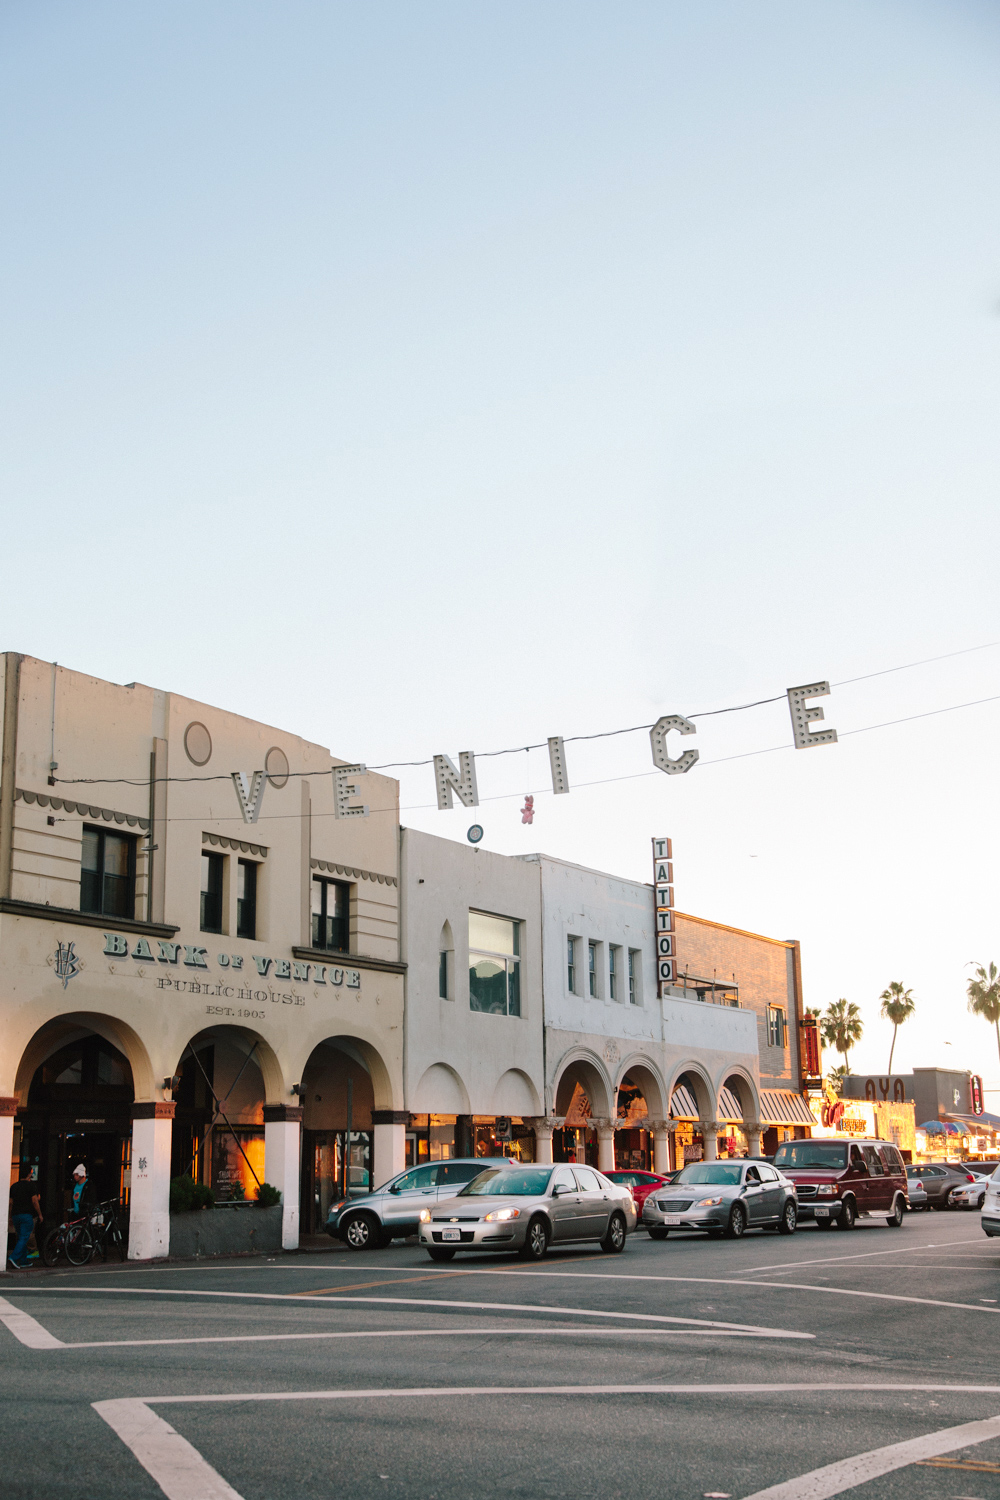 The iconic Venice sign at dusk.